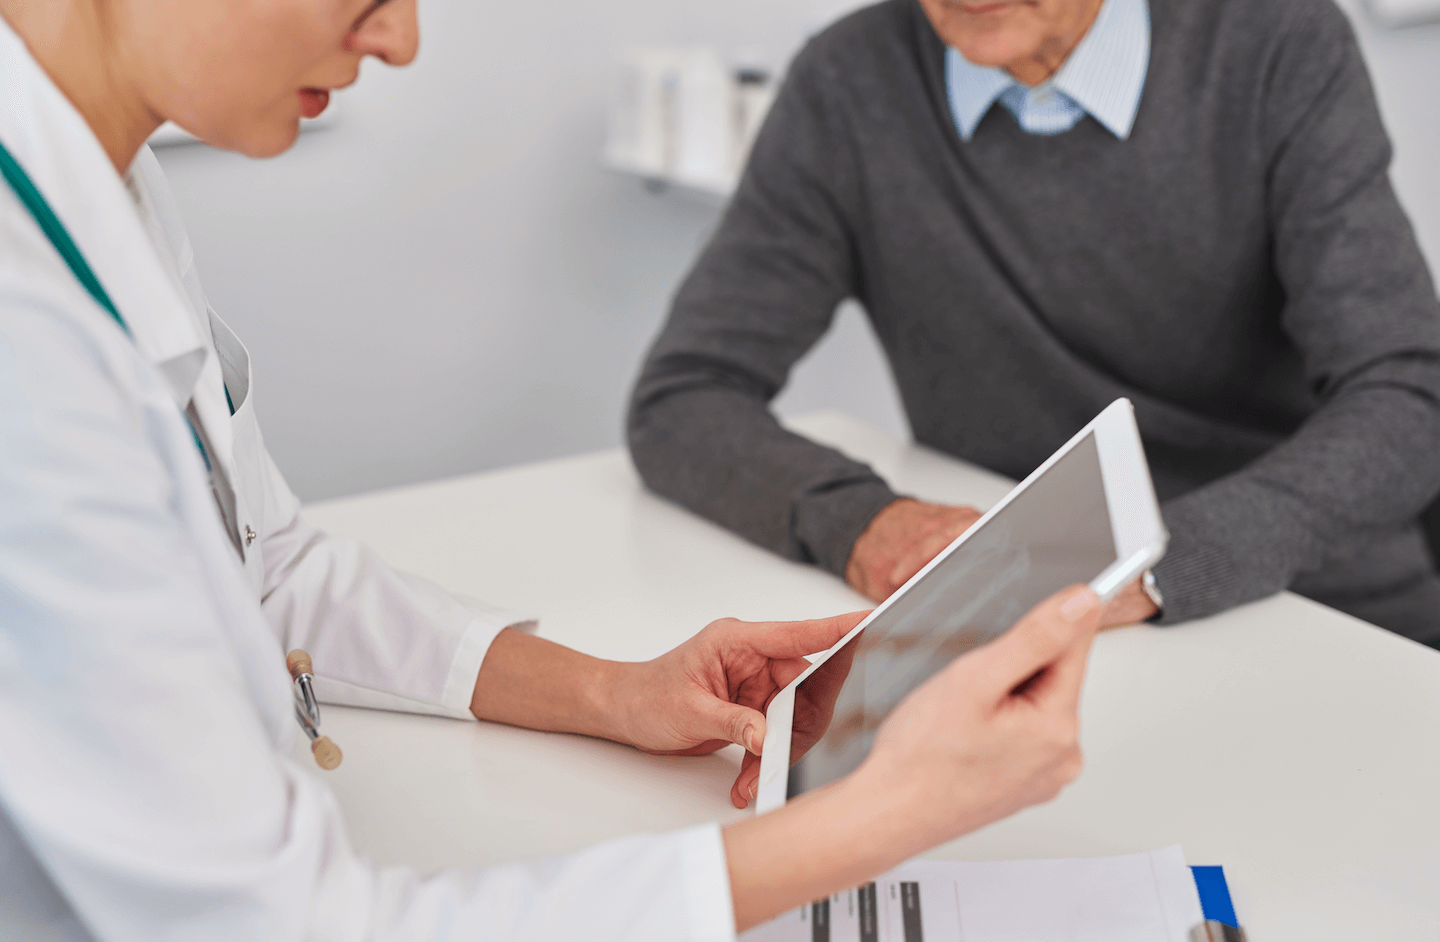 Best practices for remote monitoring of blood glucose patients